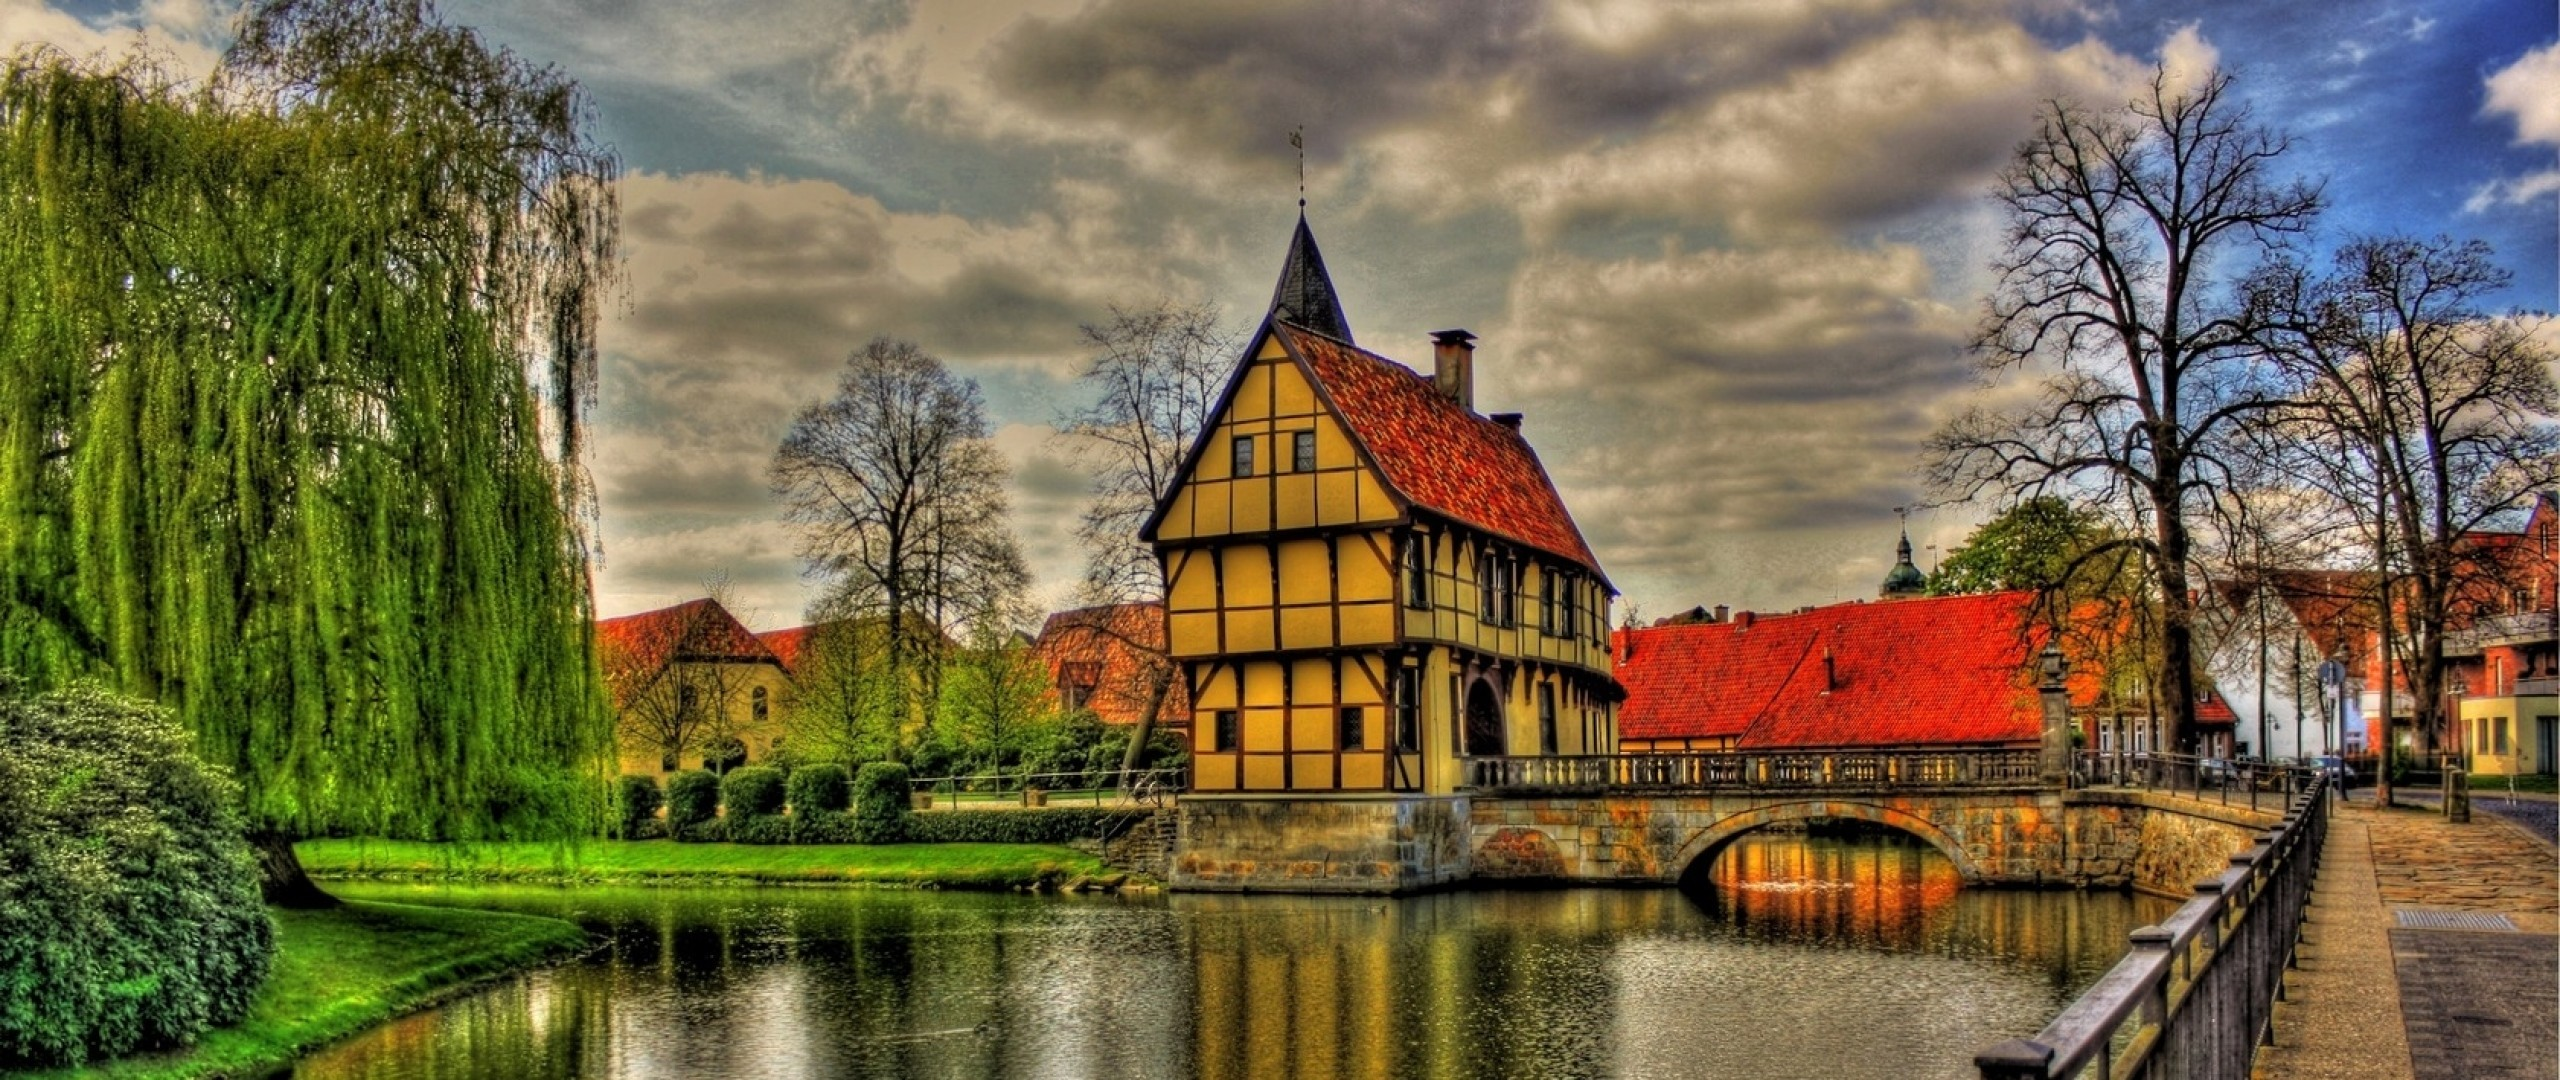 Preview wallpaper germany, architecture, beauty, bridge, clouds, colorful,  colors,